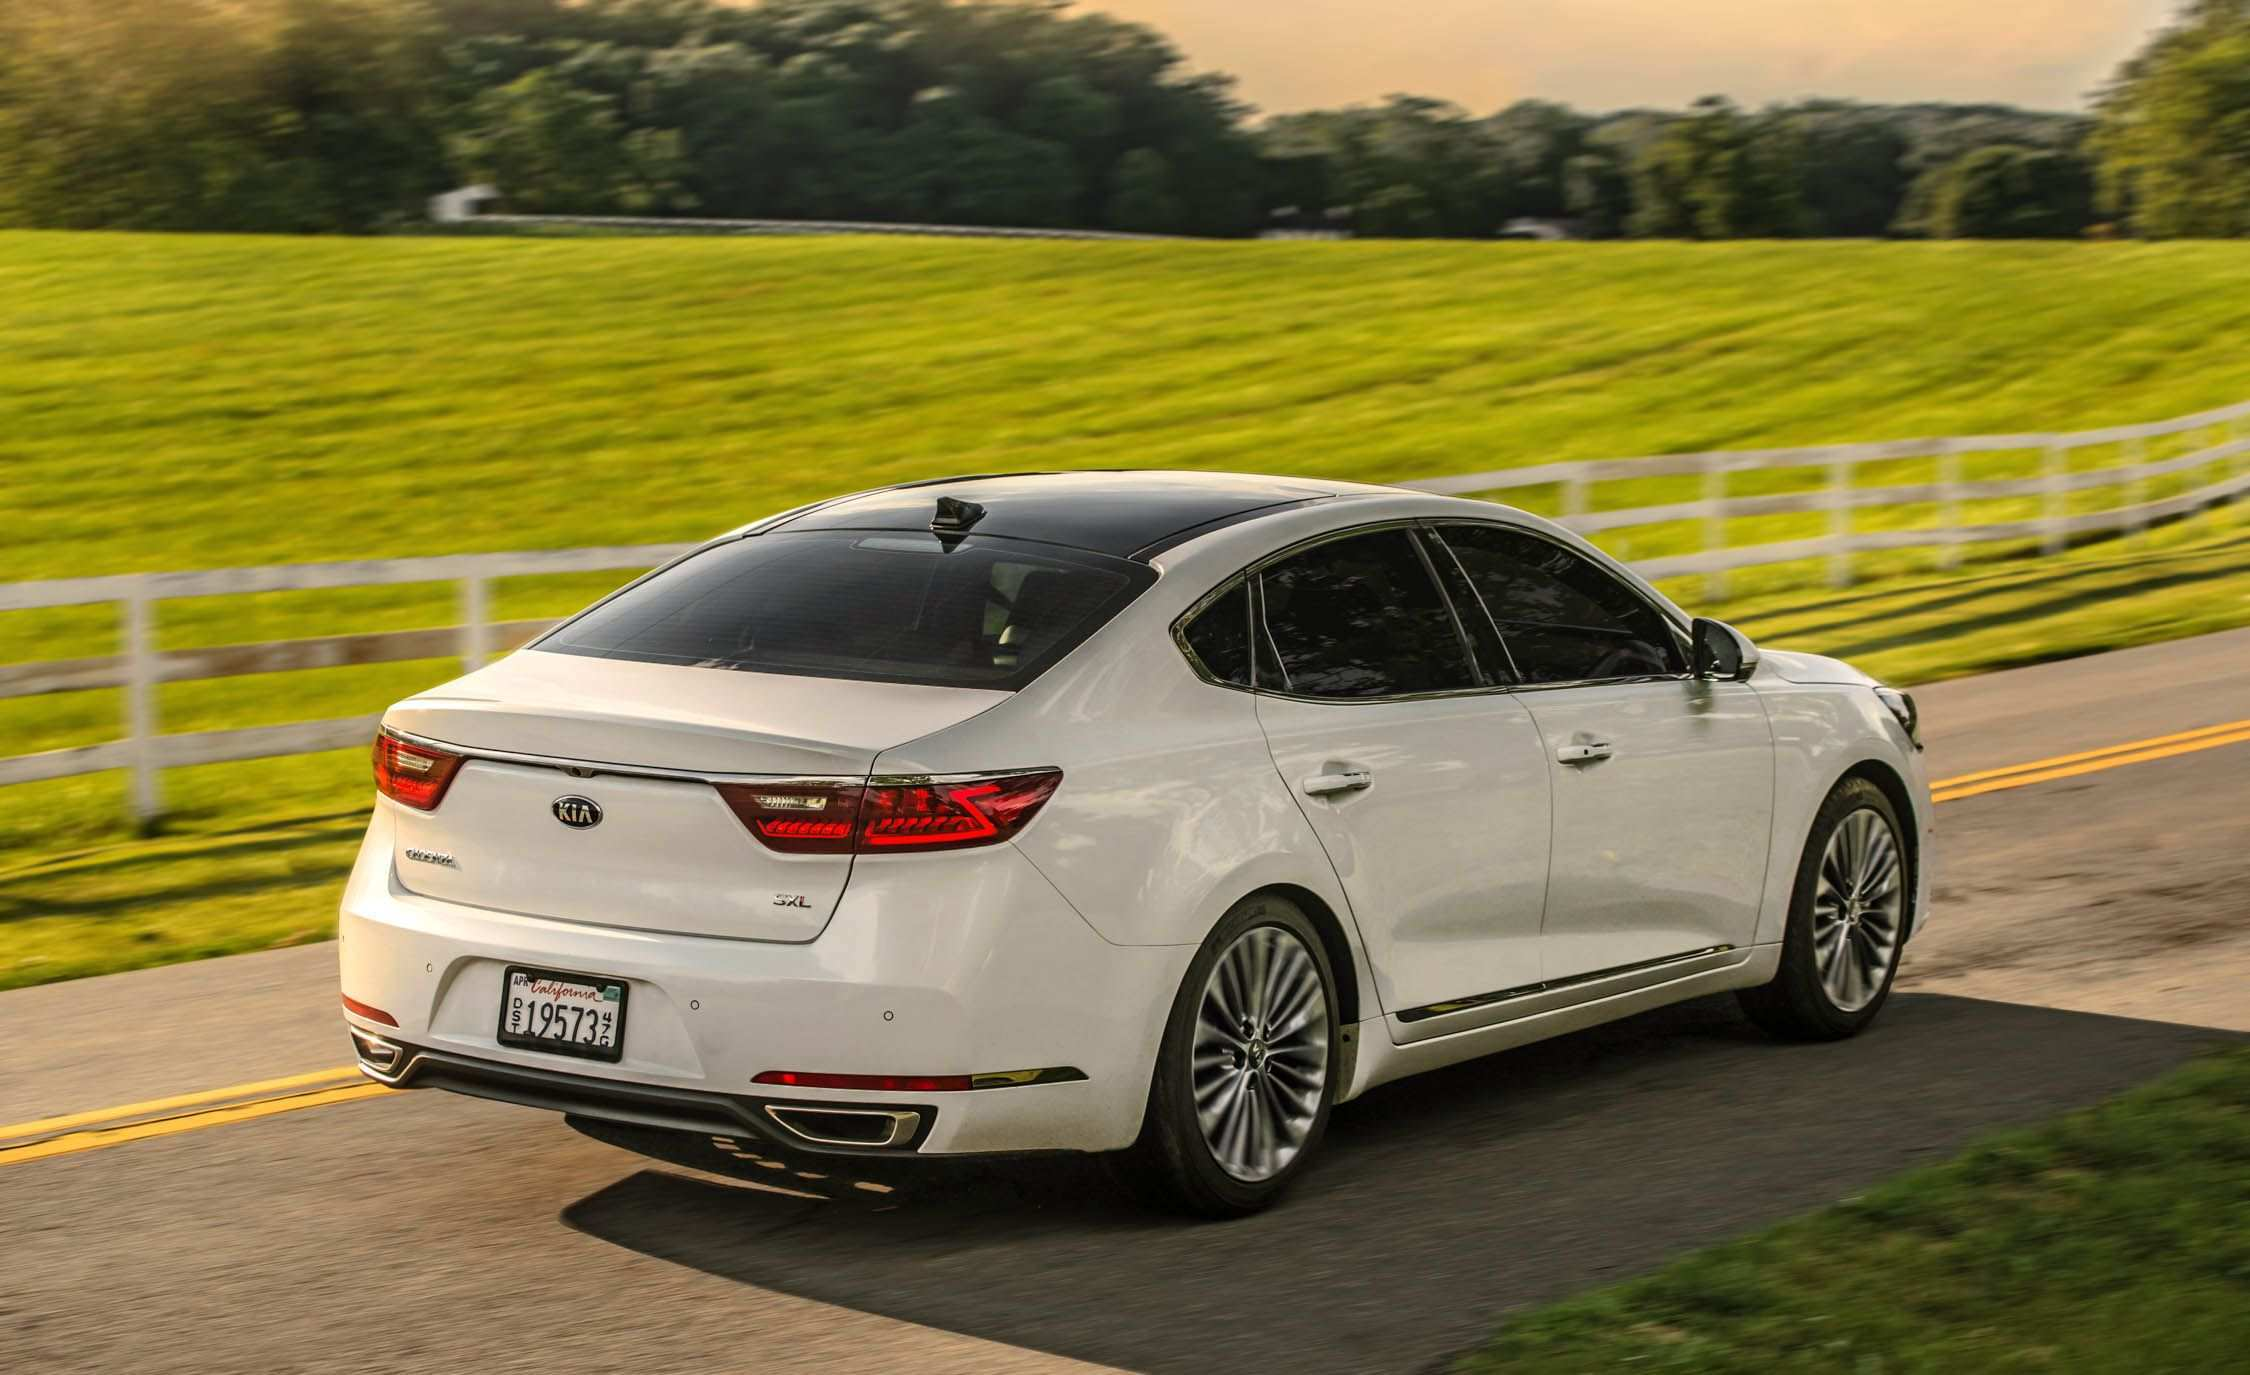 77 The Best 2019 Kia Cadenza Limited Review Research New by Best 2019 Kia Cadenza Limited Review